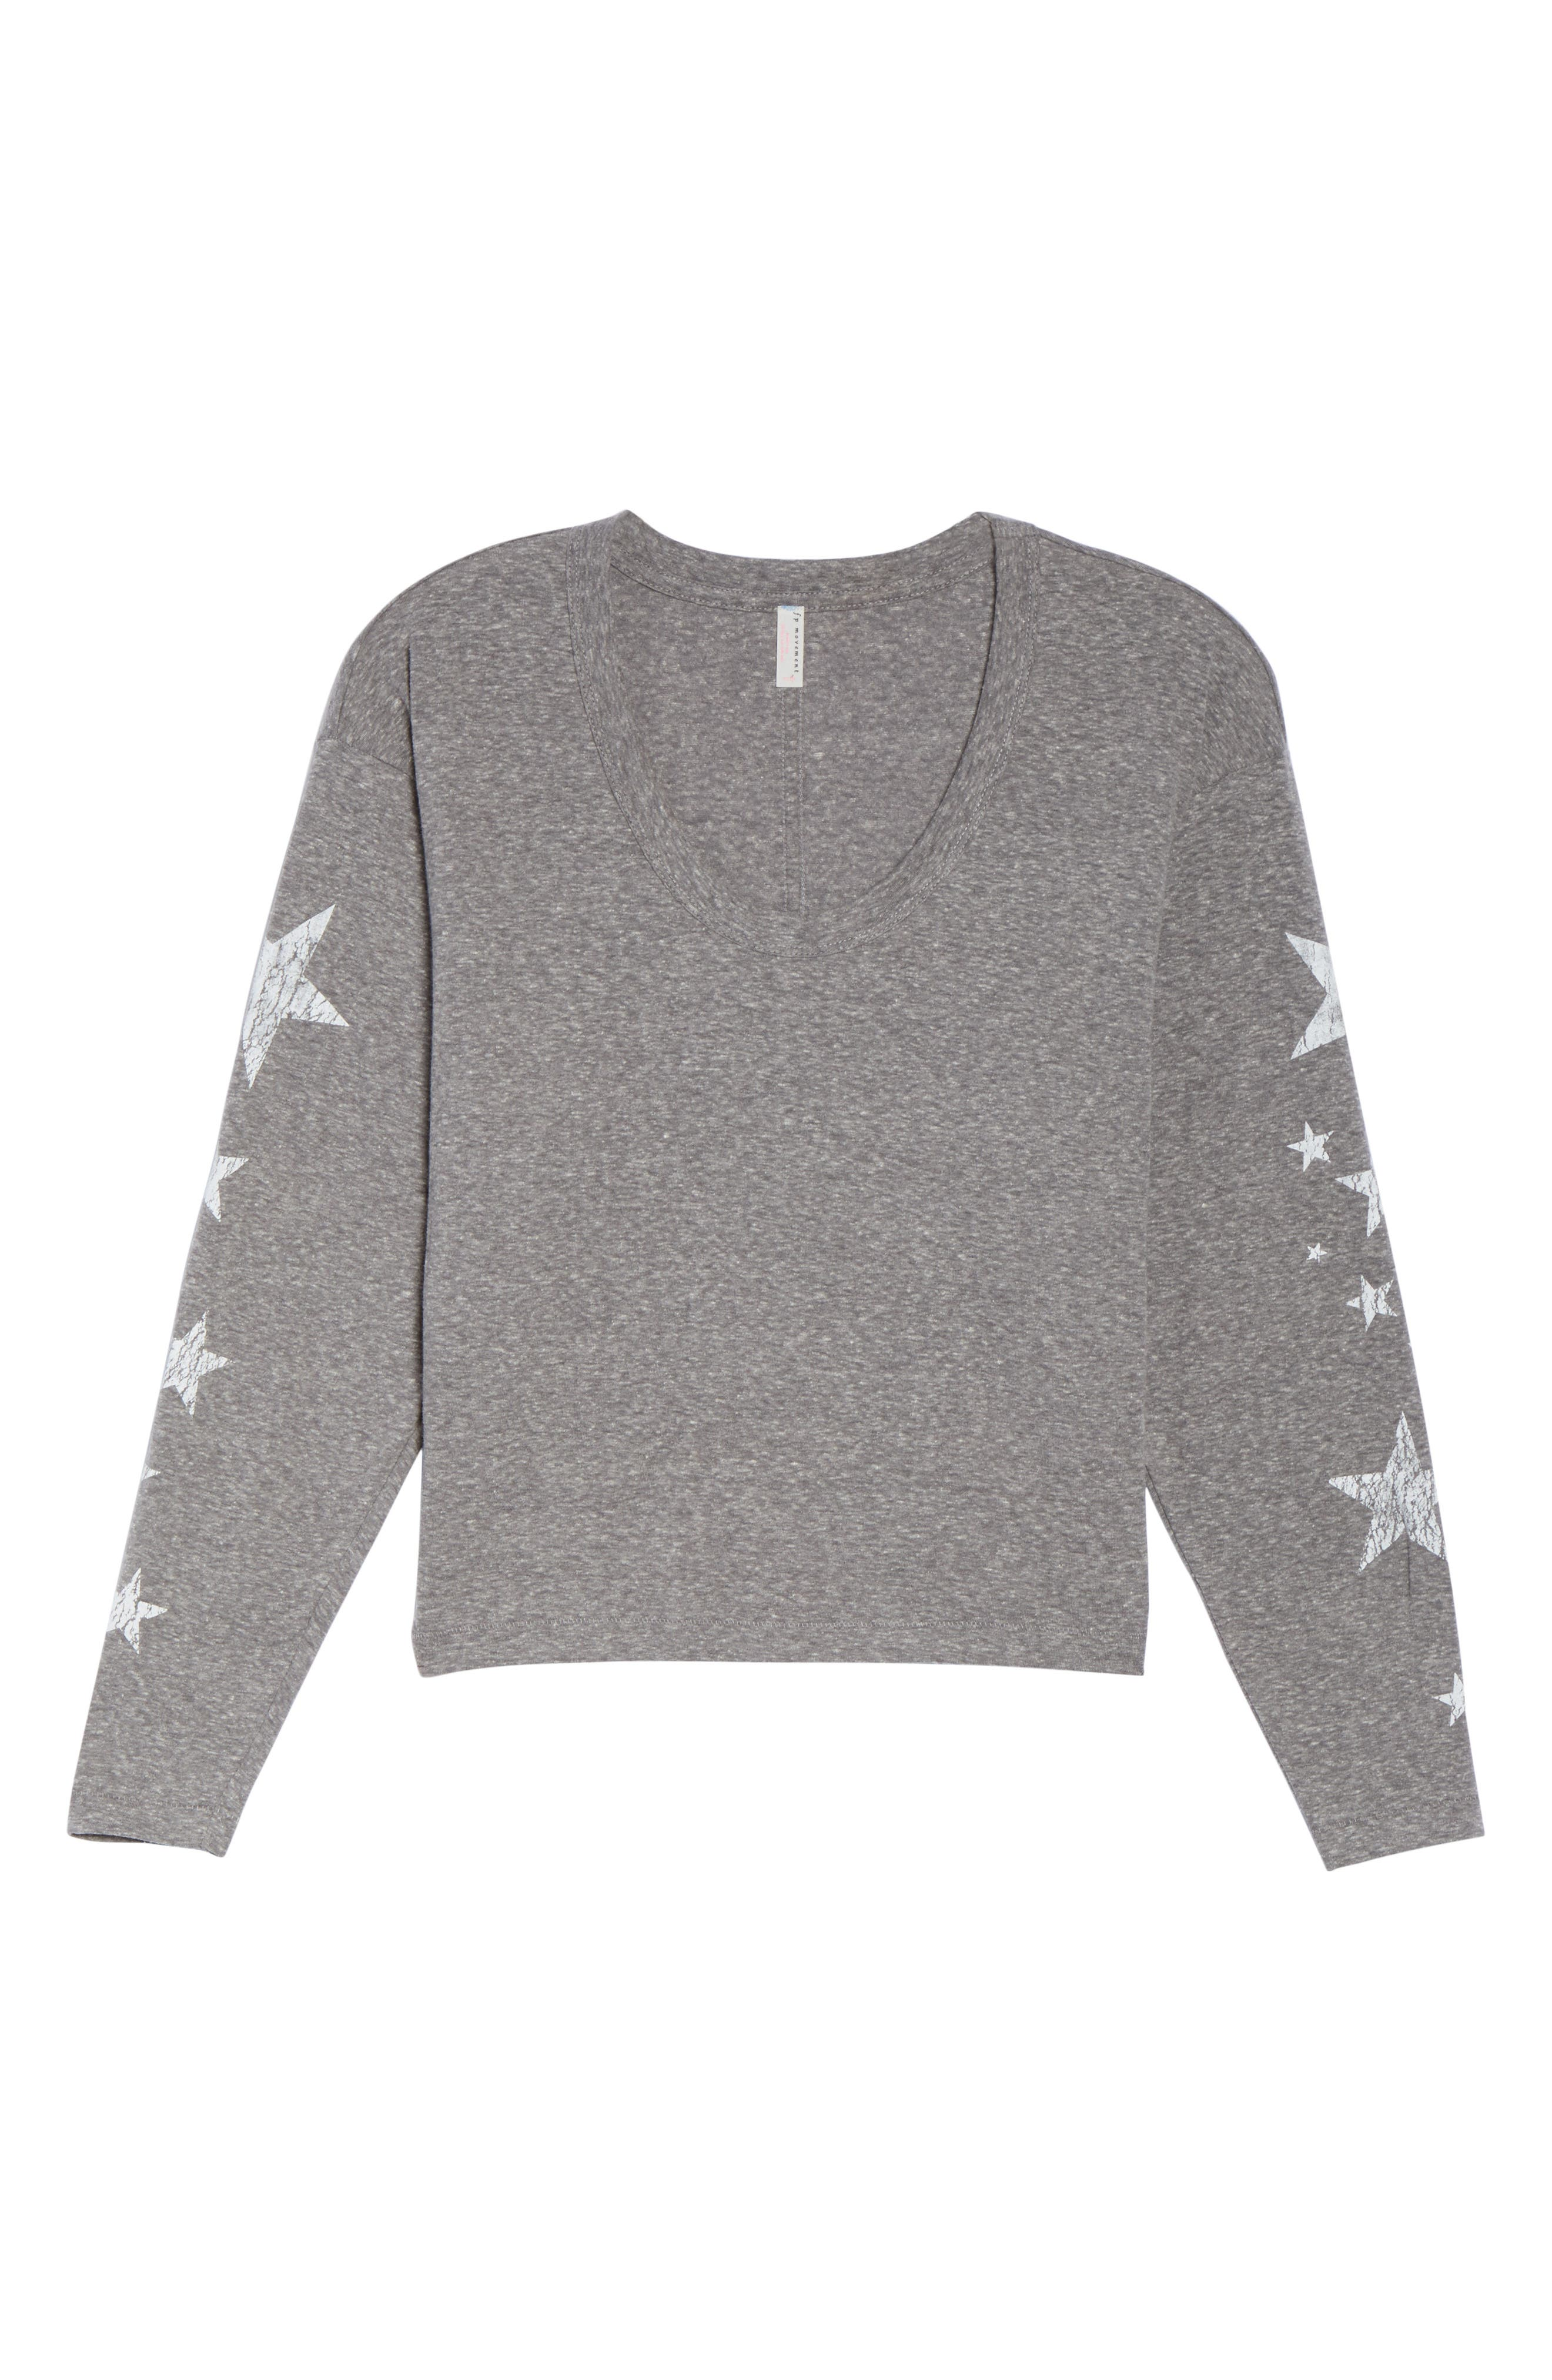 Free People Melrose Star Graphic Top,                             Alternate thumbnail 17, color,